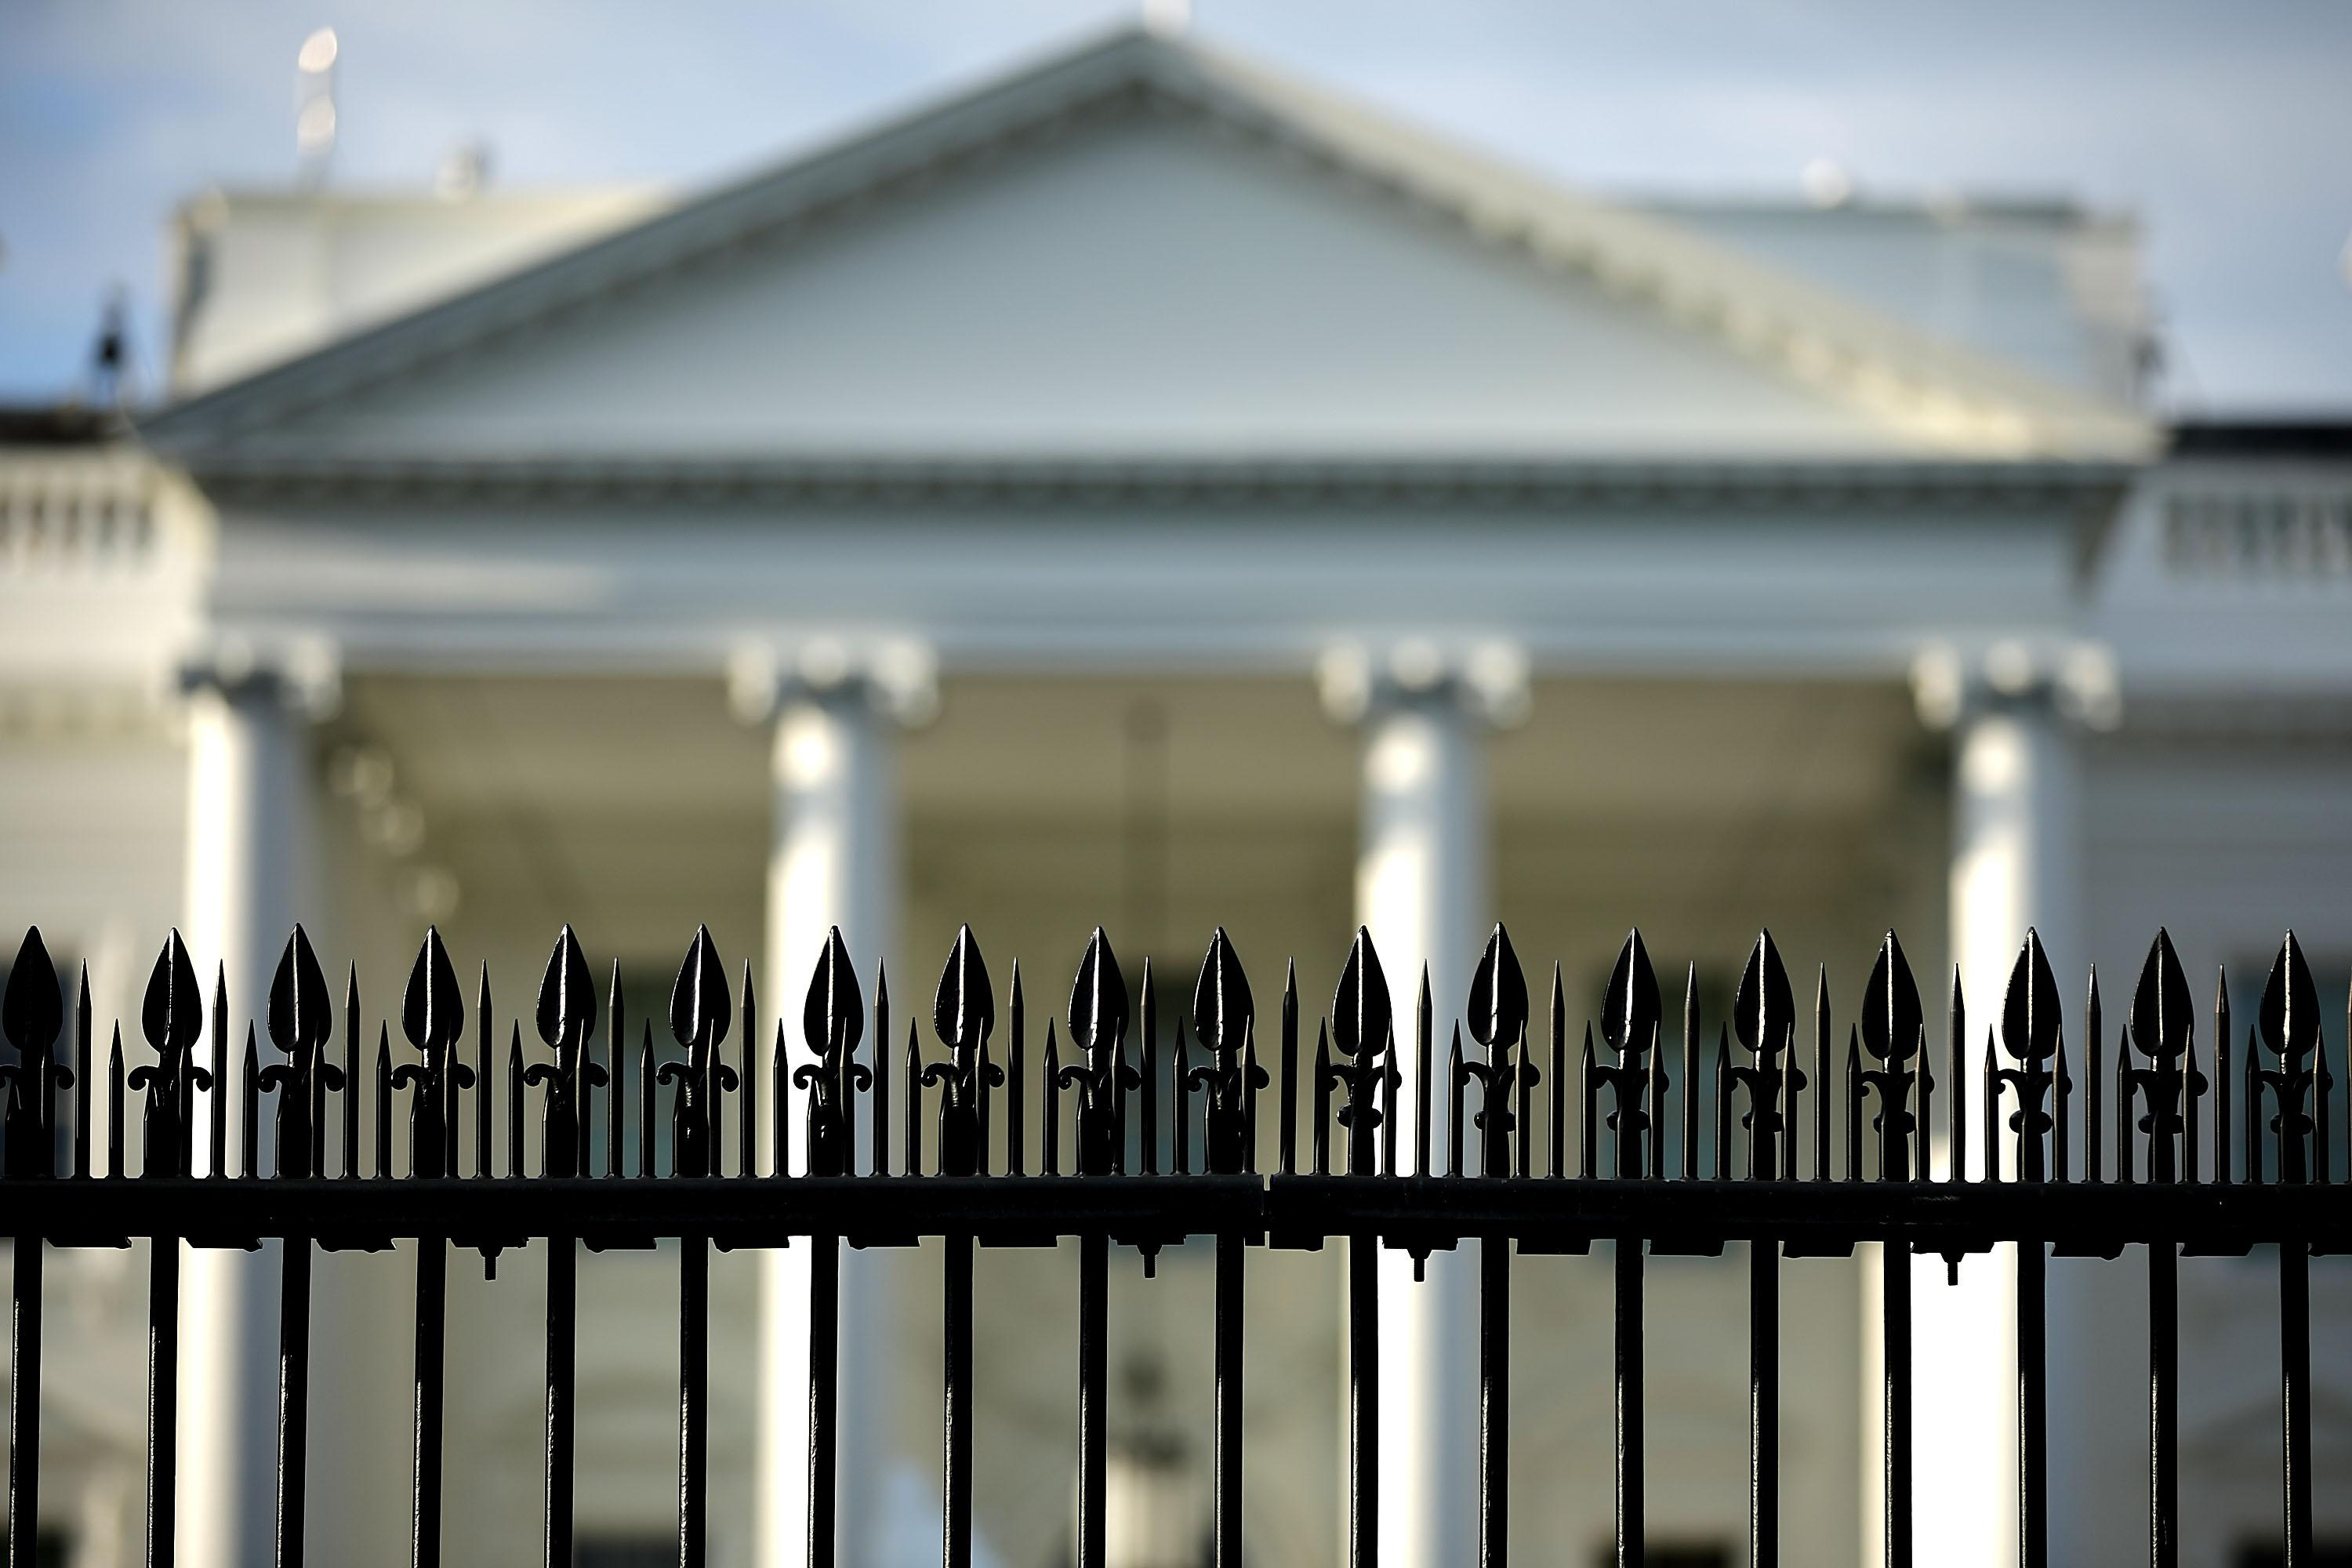 WASHINGTON, DC - AUGUST 22:  Early morning sunshine hits the north side of the White House on August 22, 2018 in Washington, DC. On Tuesday President Donald Trump's former lawyer and fixer Michael Cohen admitted in court that Mr. Trump directed him to break campaign finance laws by paying off two women who said they had sexual relationships with Mr. Trump while at the same time that Trump's former campaign chairman Paul Manafort was found guilty of eight counts of tax and bank fraud.  (Photo by Chip Somodevilla/Getty Images)